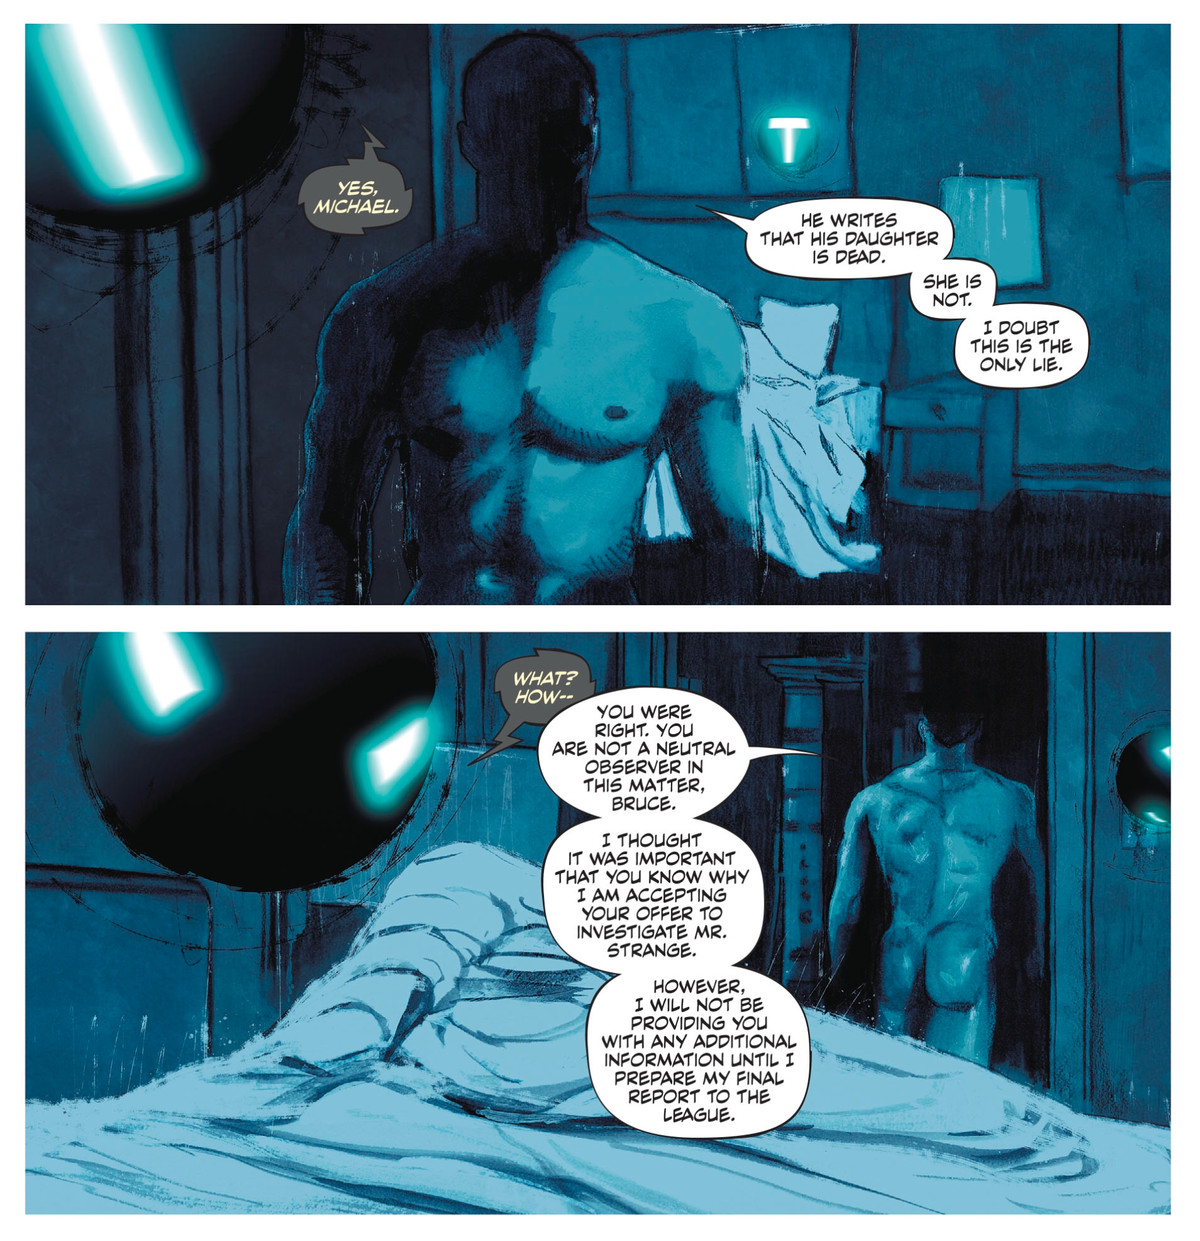 Naked, Mister Terrific gets out of bed in the dark of night, and walks to another room. Over comms, he tells Batman that there are holes in Adam Strange's story, and he's accepting Batman's request to investigate him, in Strange Adventures #2, DC Comics (2020).